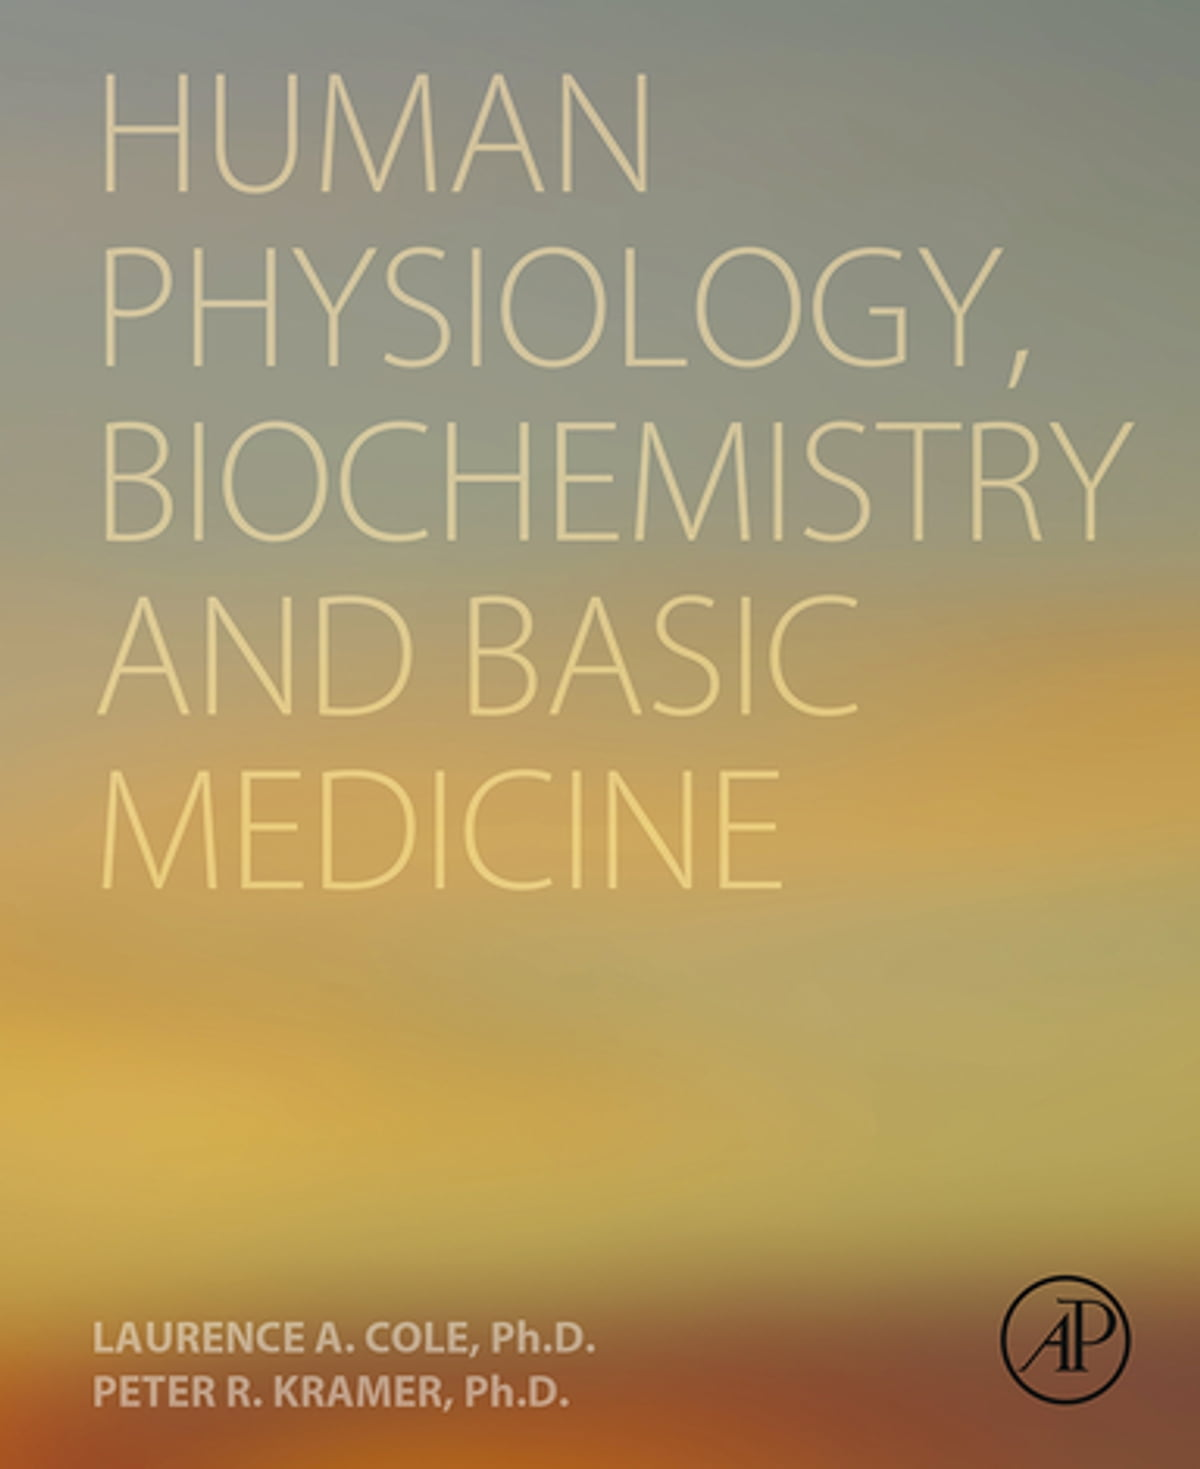 Human Physiology, Biochemistry and Basic Medicine eBook by Laurence ...